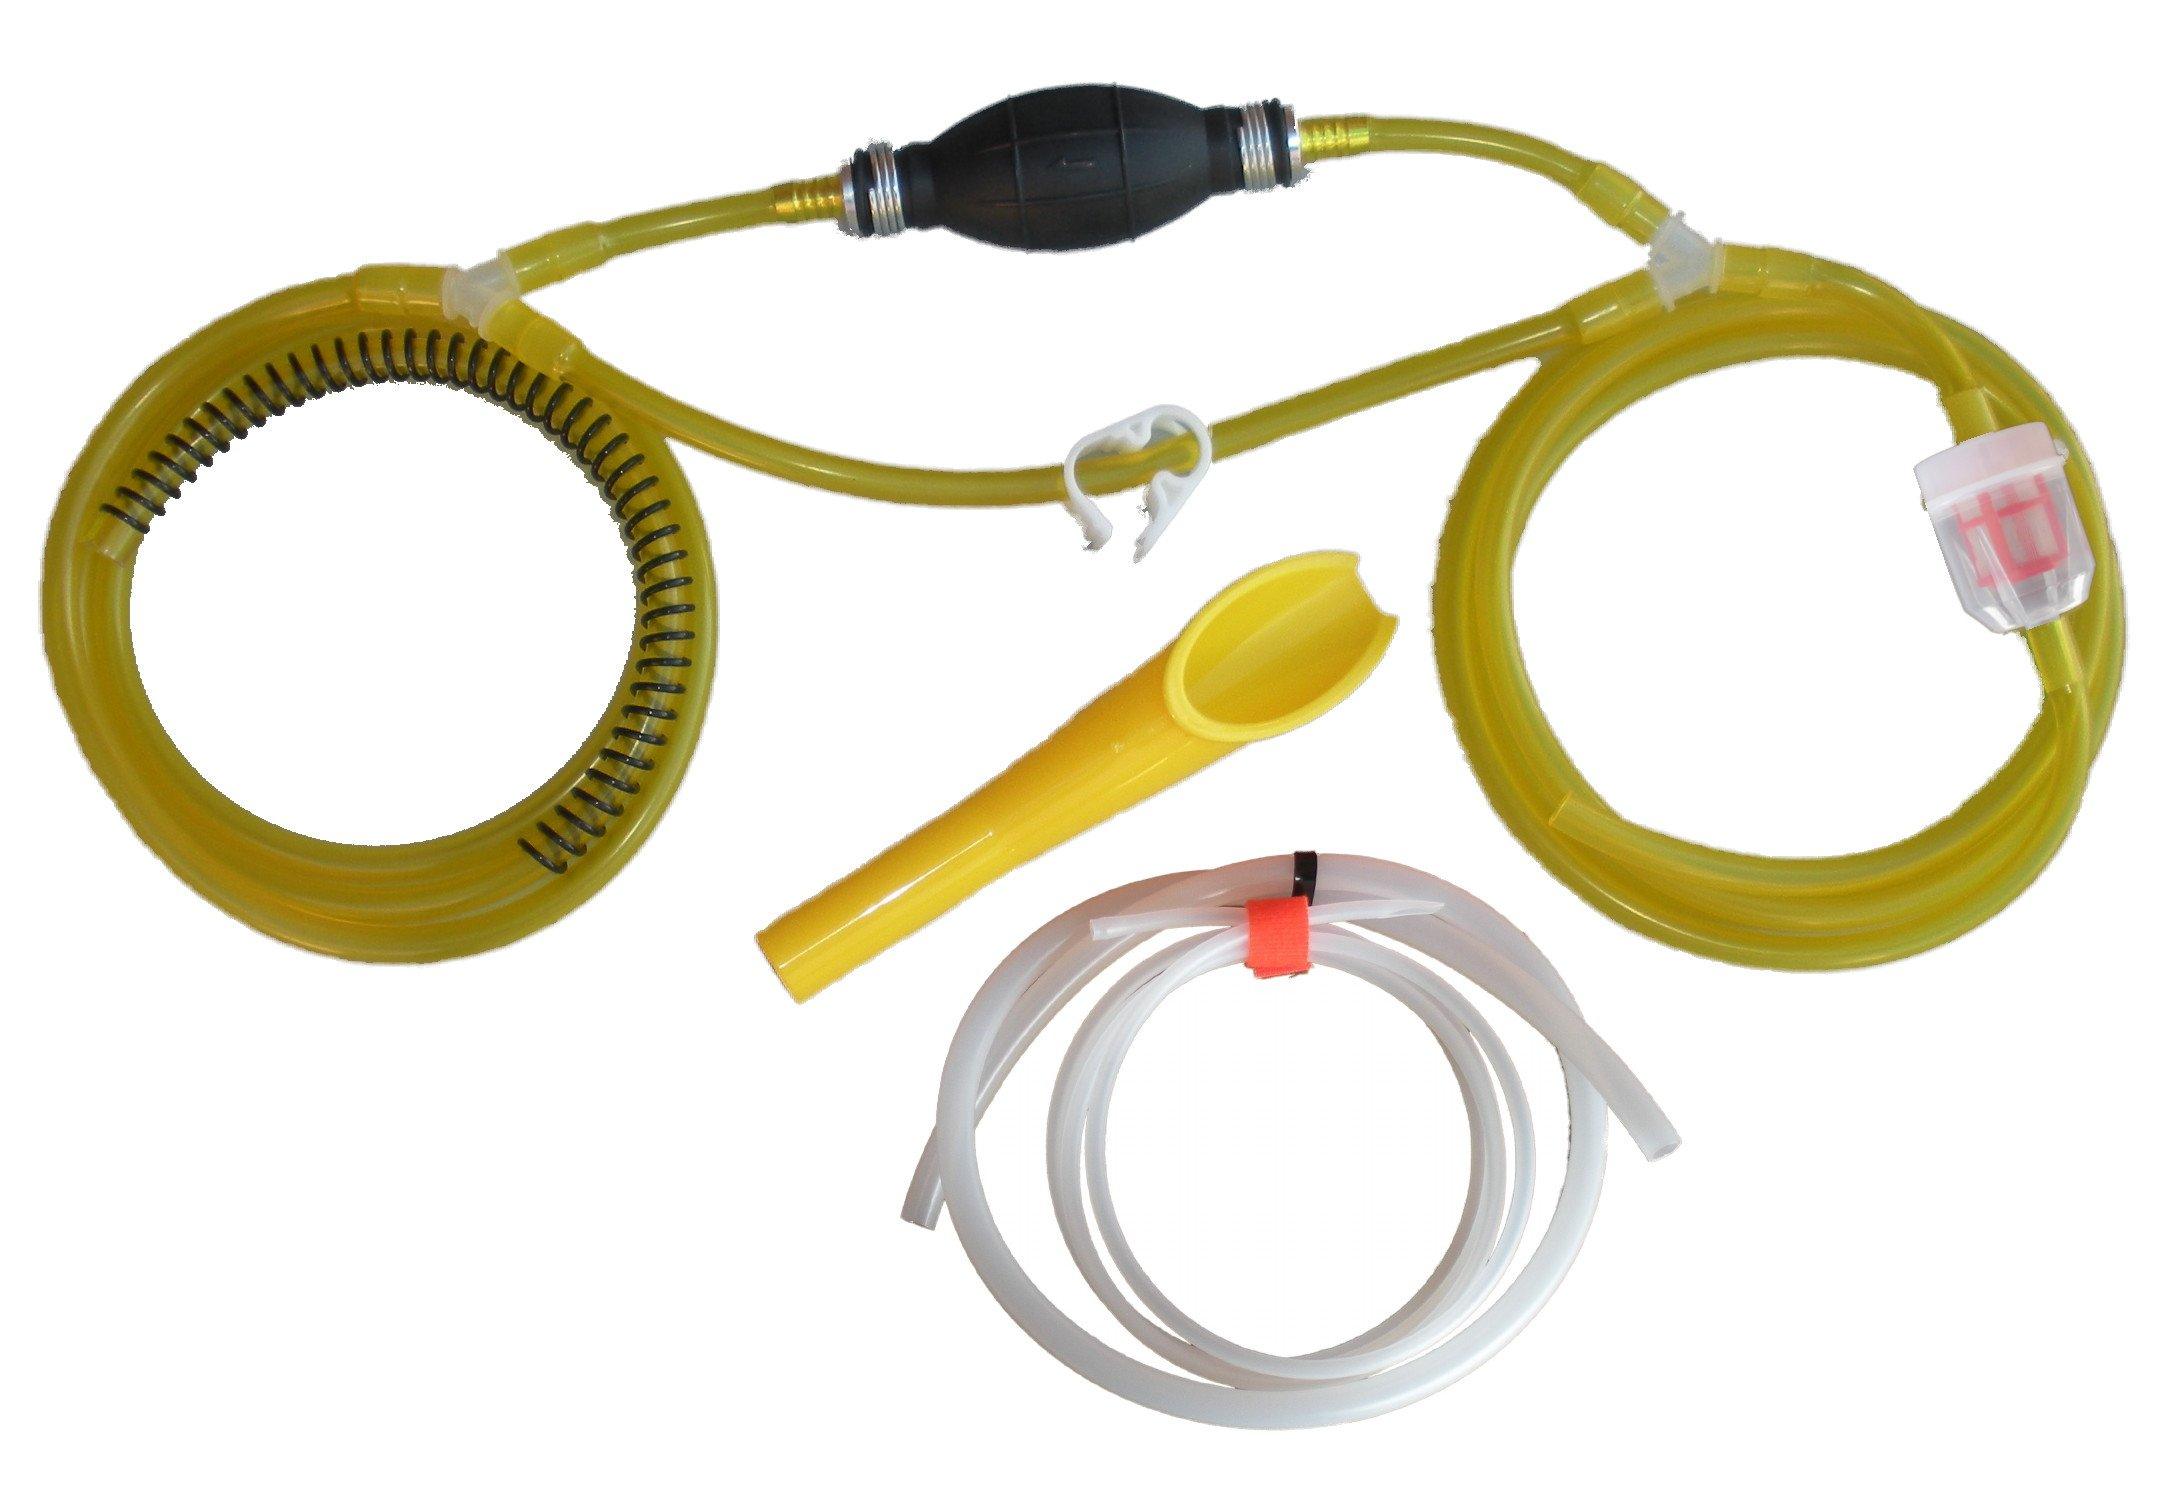 GasTapper (TM) Gravity Model - Liquid Transfer Gasoline Siphon Pump 18' of Fuel Hose & Modern Car Adapter - USA Hose & Assembly- See all 5 models - search ''by GENTAP'' in Amazon search bar